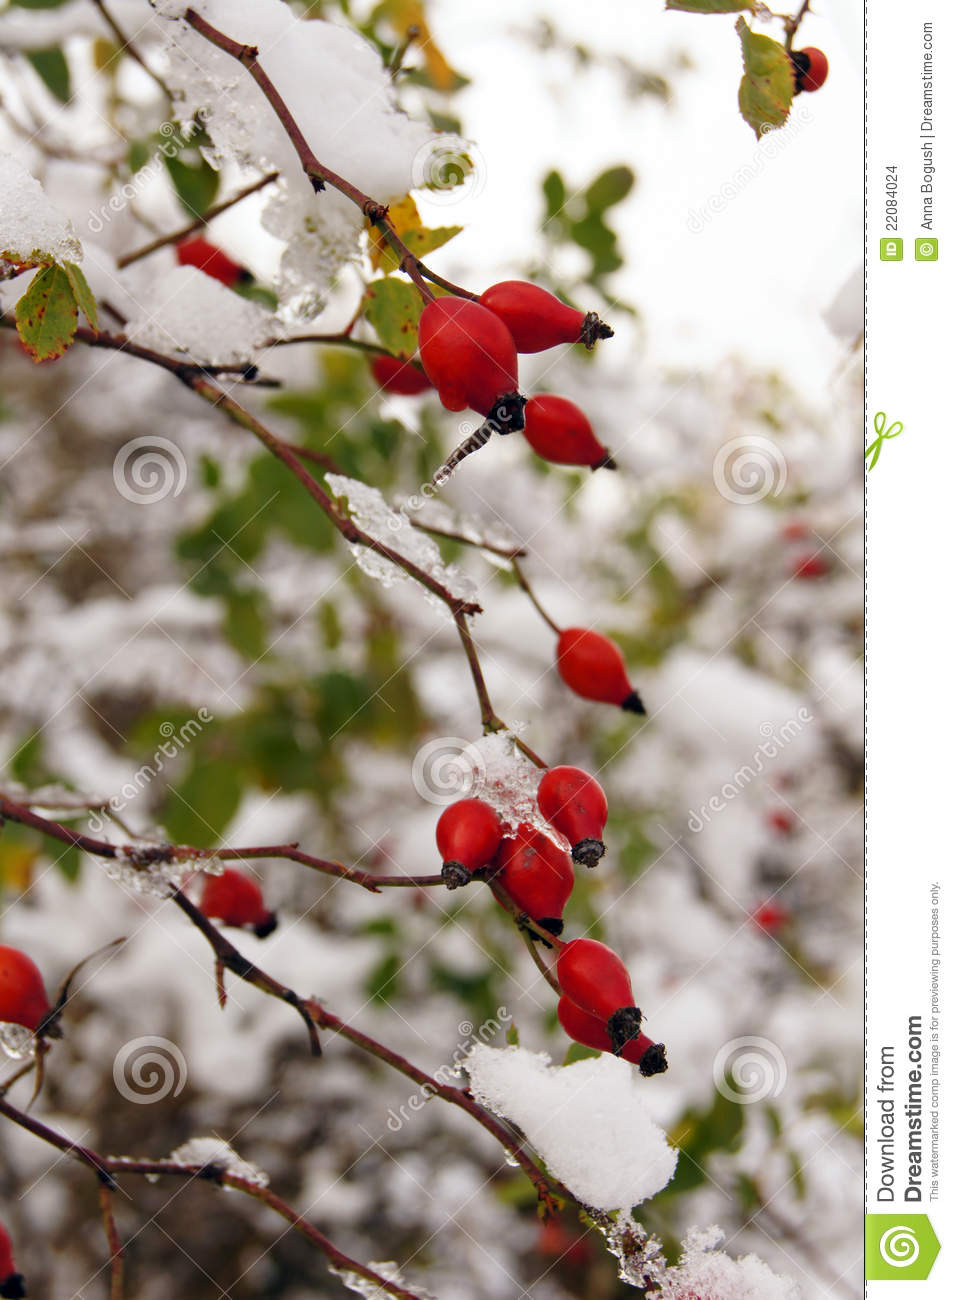 Red Wild Rose Hips Under The Snow Stock Photo Image Of